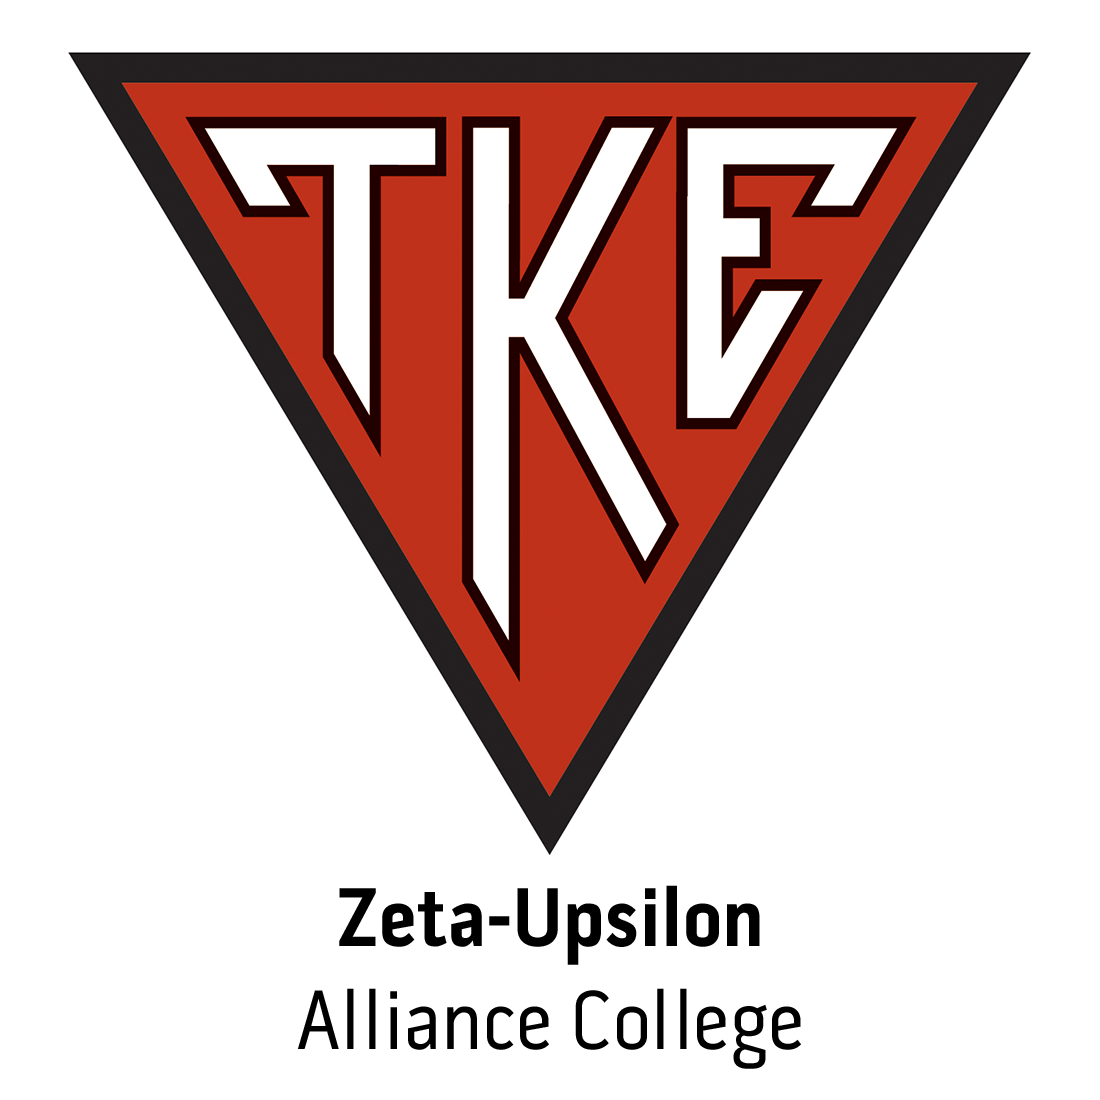 Zeta-Upsilon Chapter at Alliance College